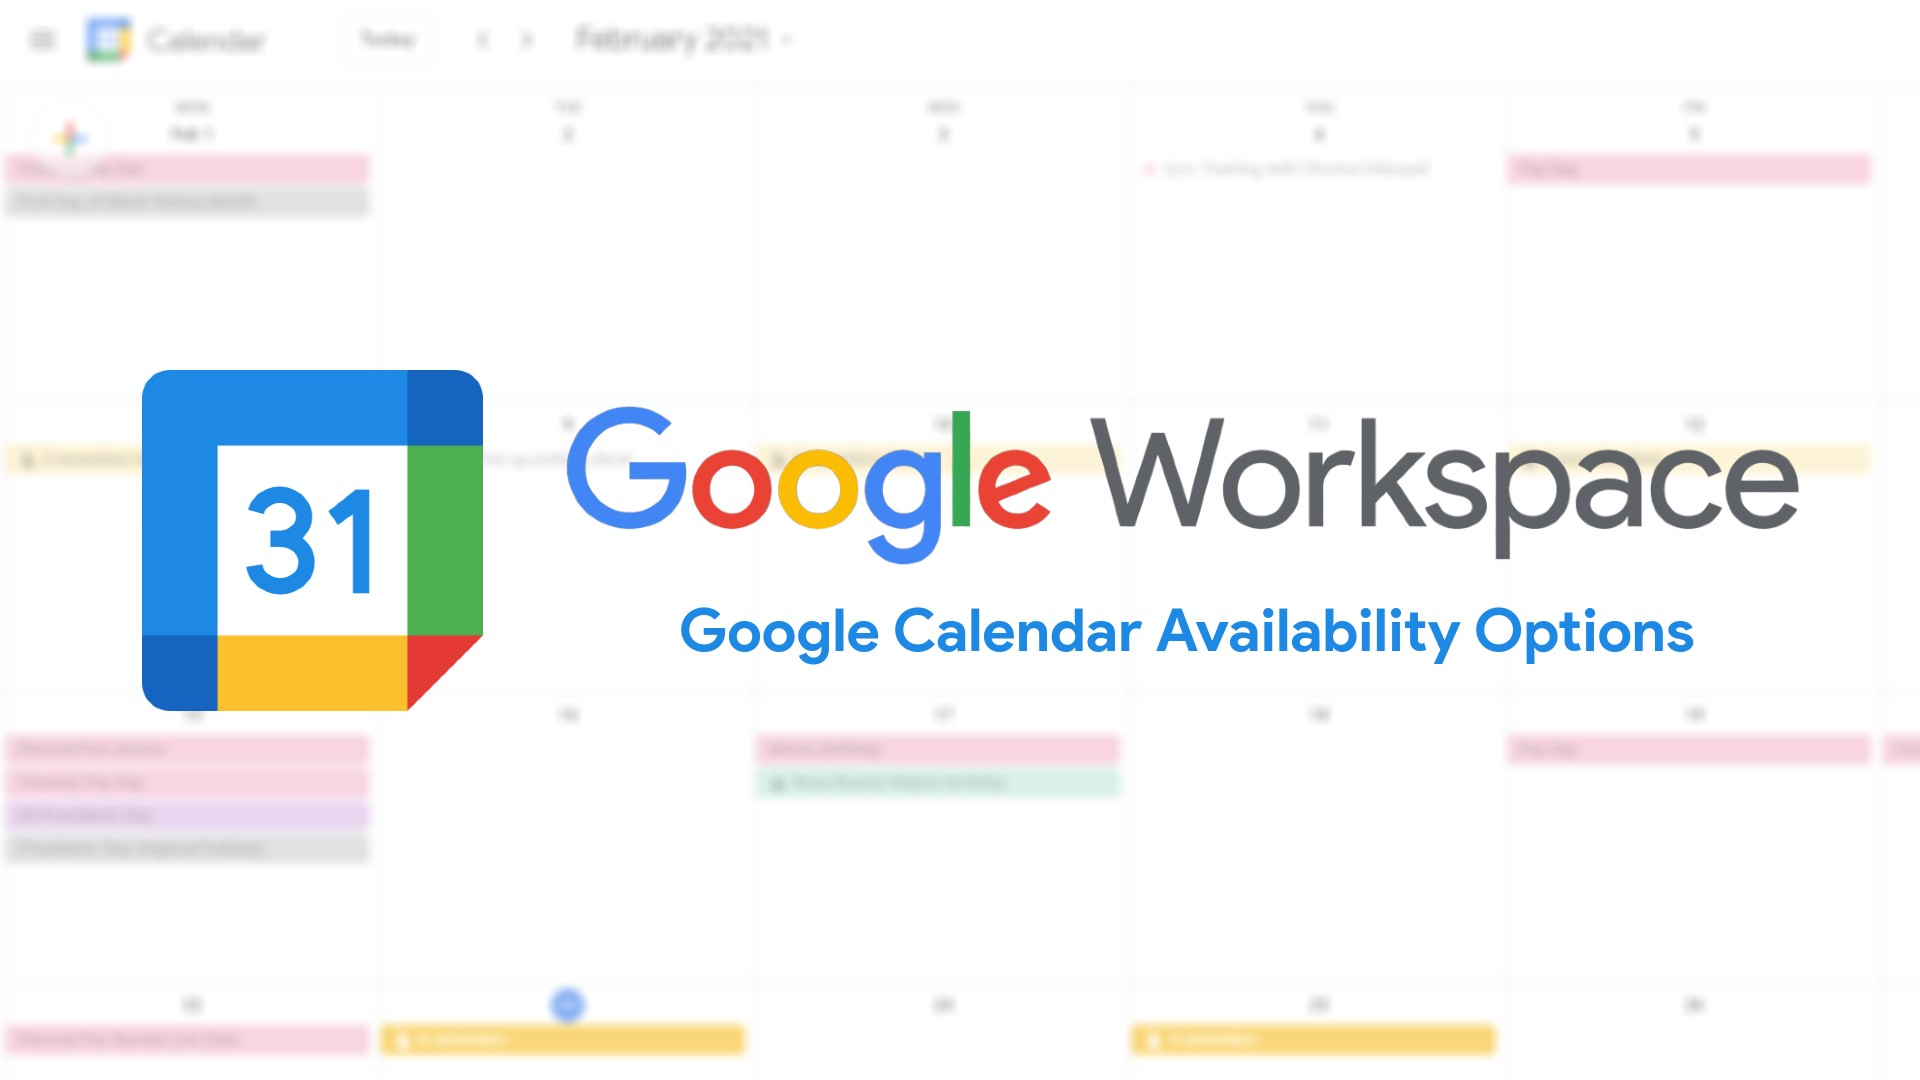 Google Calendar Adds Option for Repeating Out of Office and Split Working Hours